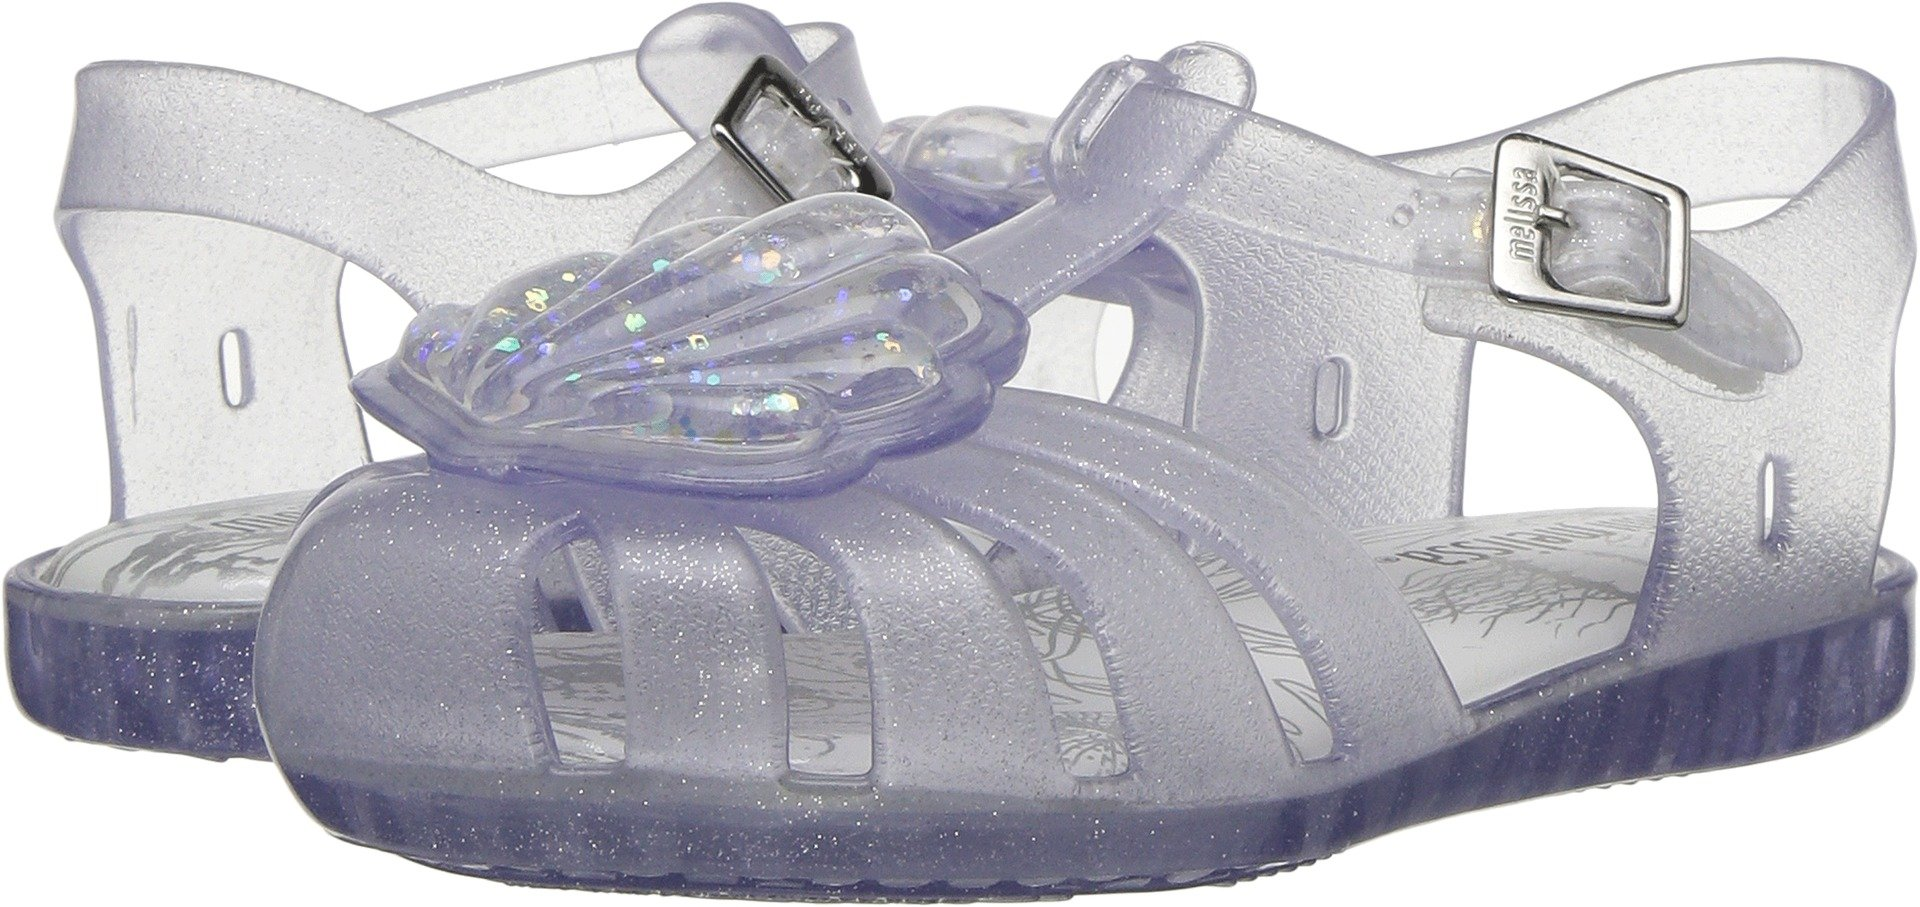 Mini Melissa Girls' Mini Aranha XII Flat Sandal, Clear Glass Sparkly, 8 Medium US Toddler by Mini Melissa